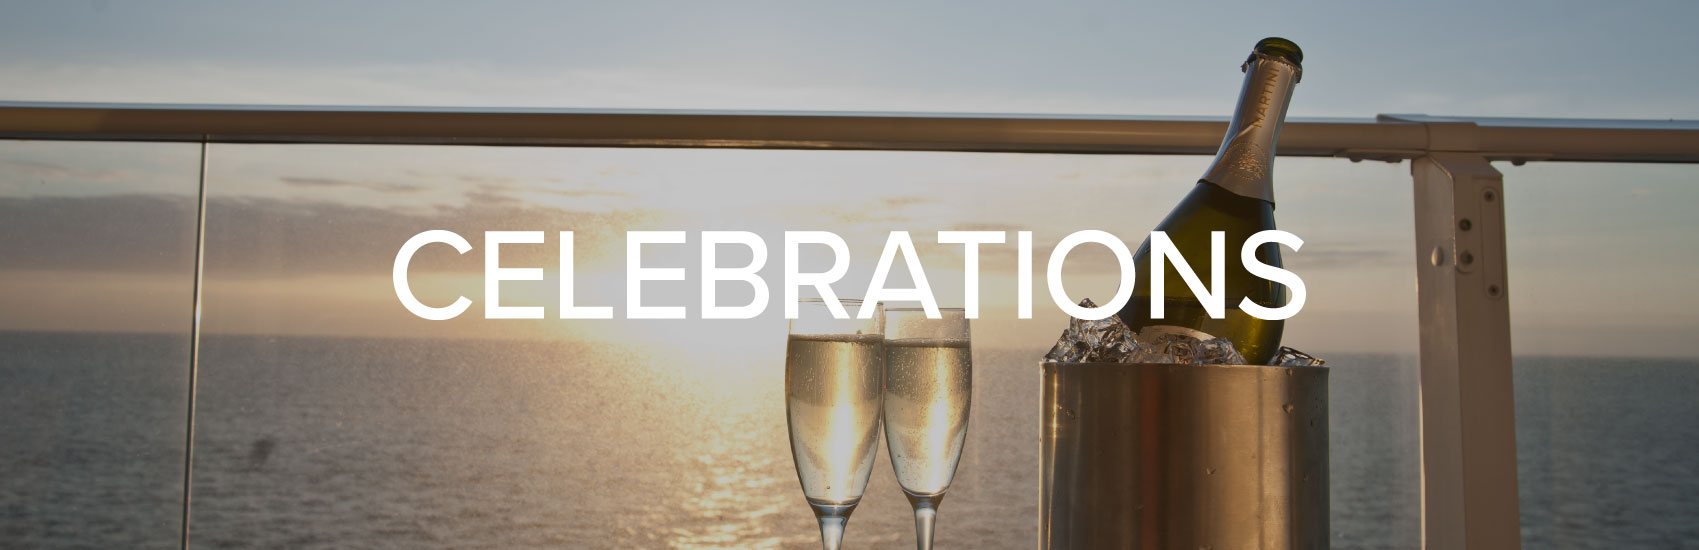 Royal Caribbean | Celebrations 0